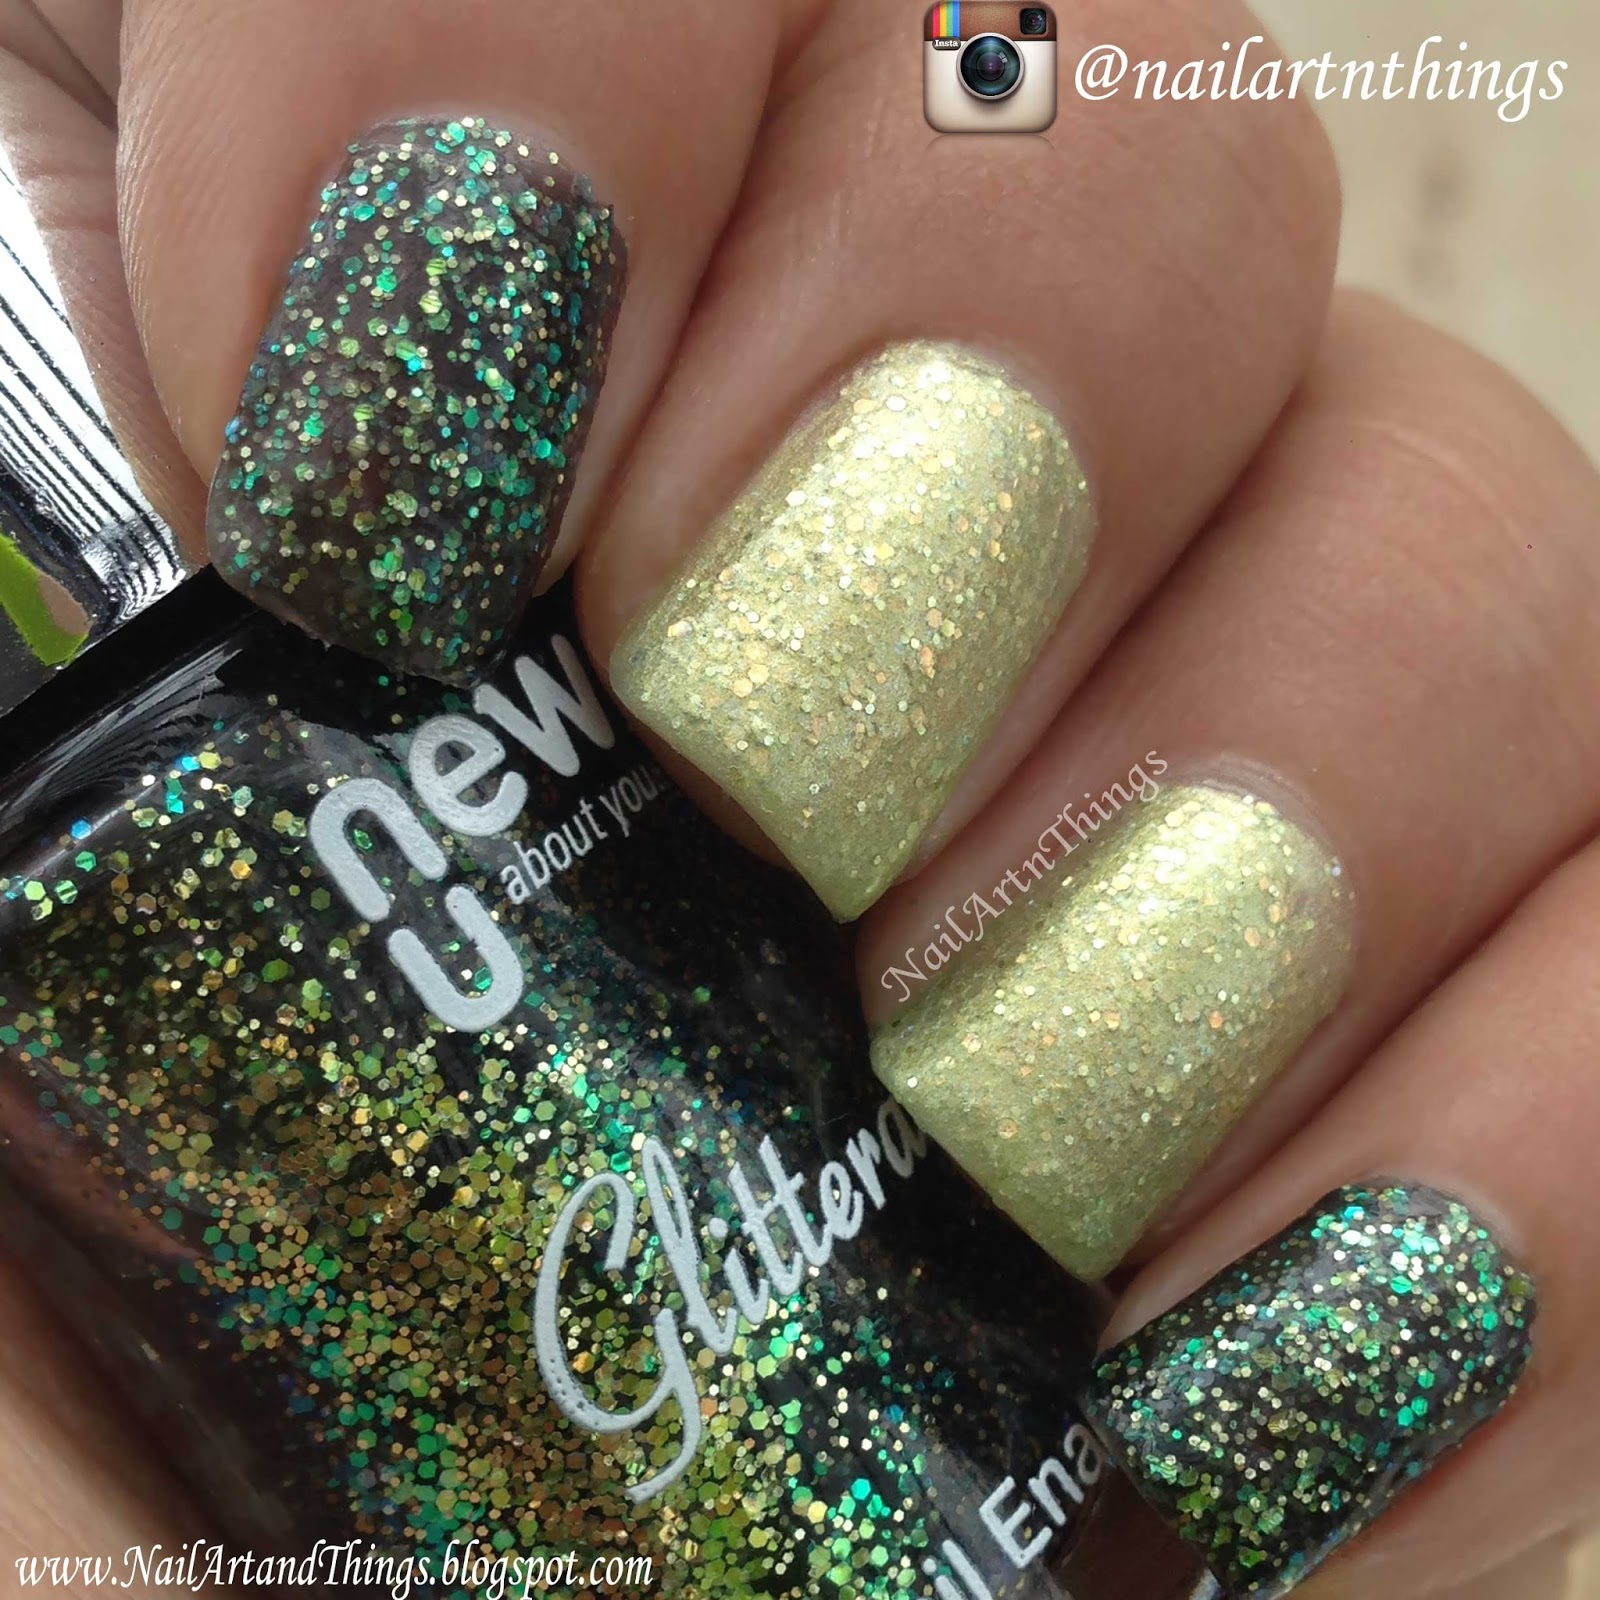 Nailart and things newu glitter nail art using outer for Outer space nail design